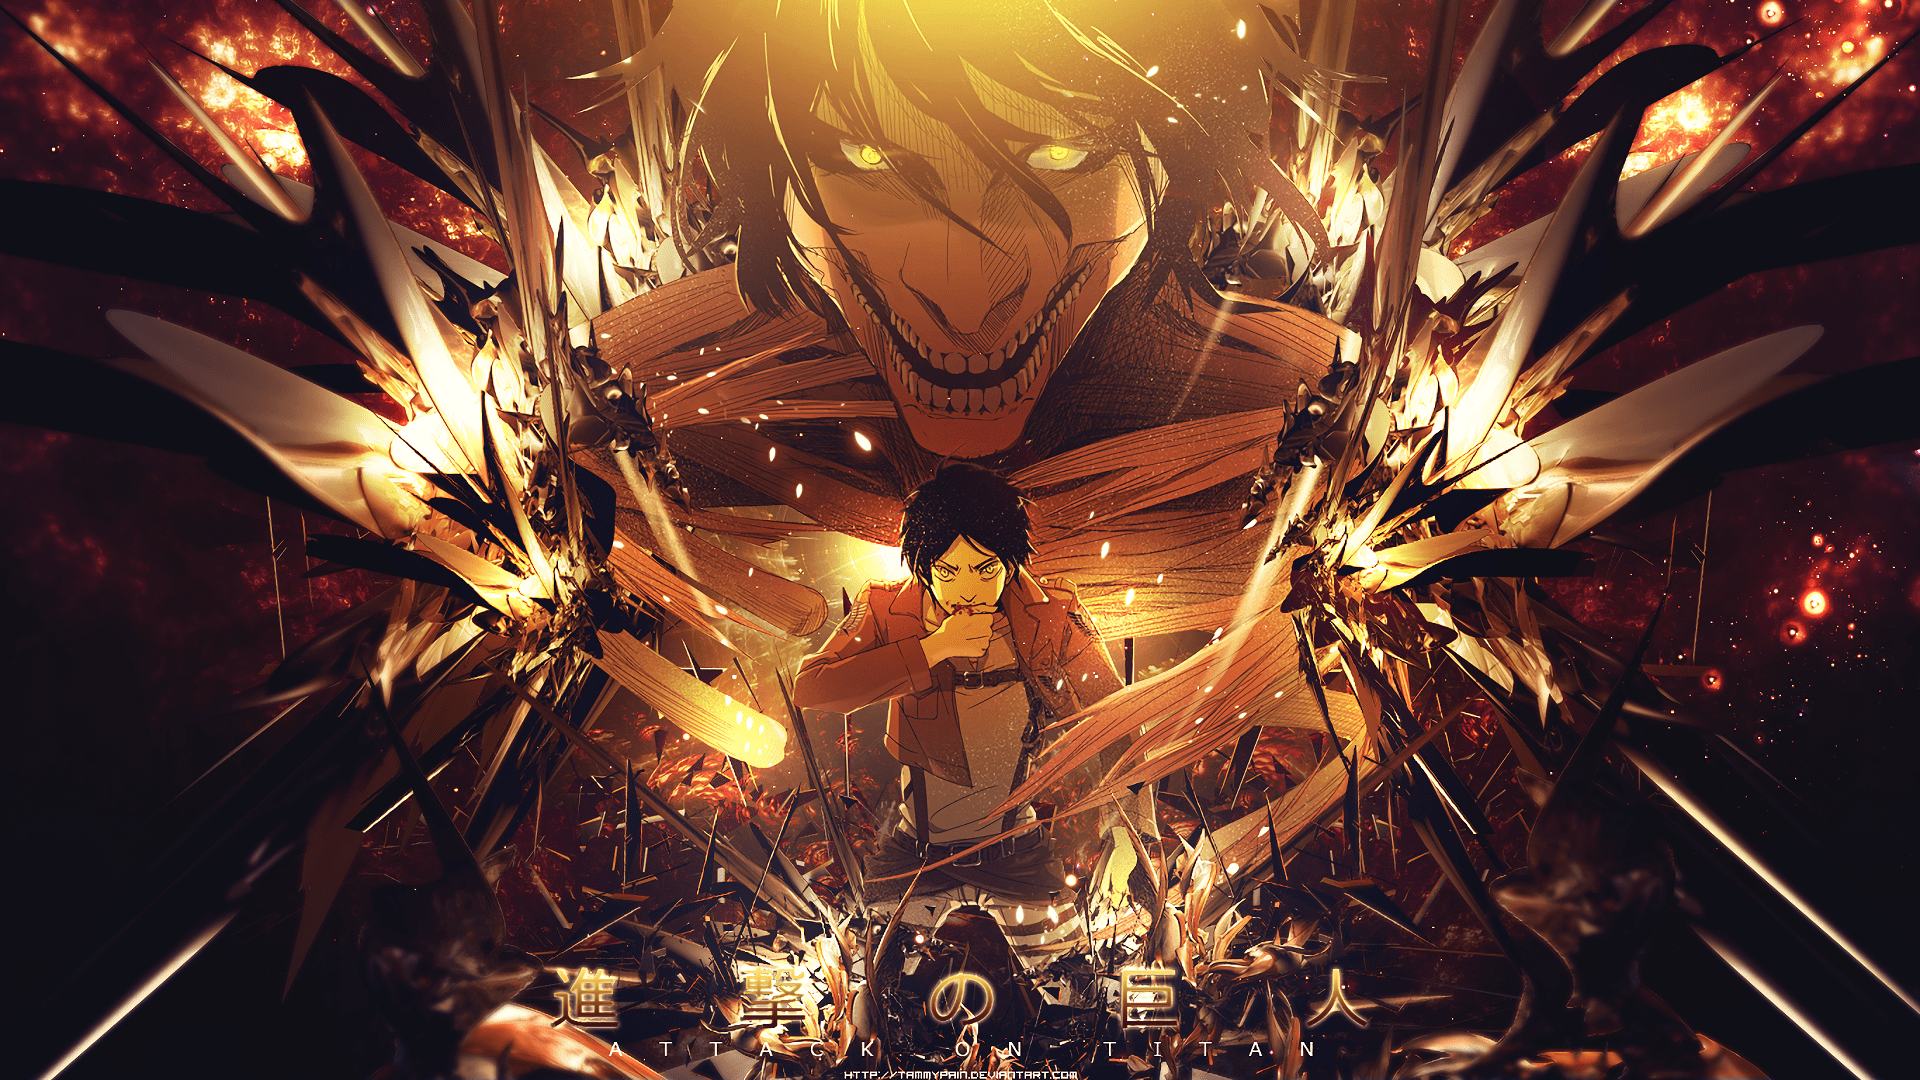 A subreddit for fans of the anime/manga attack on titan (known as shingeki no kyojin in. Attack On Titan HD Wallpaper | Background Image ...